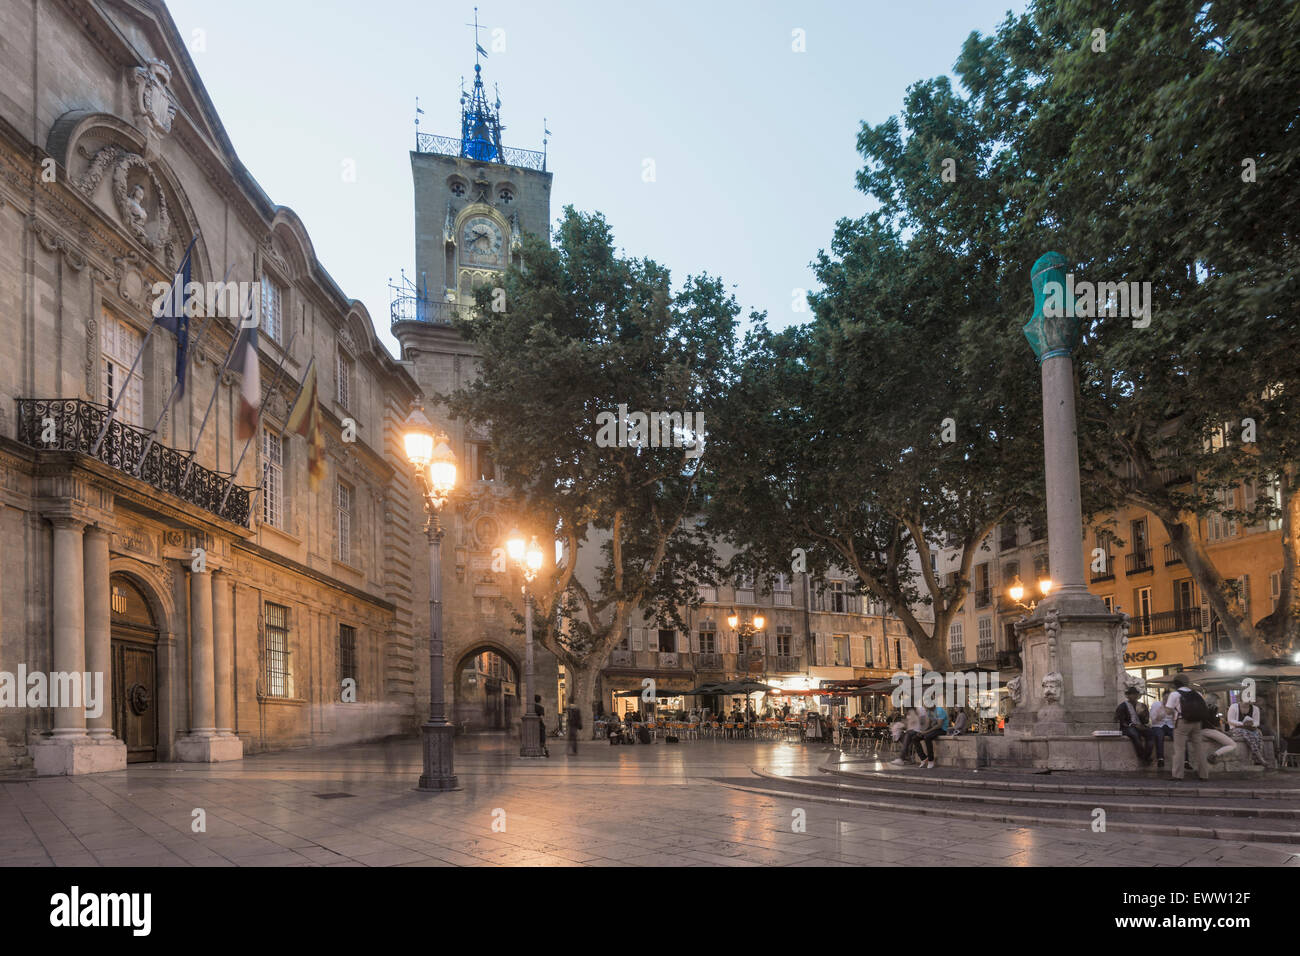 Market Place, Town Hall, Clock Tower,   Aix-en-Provence Stock Photo